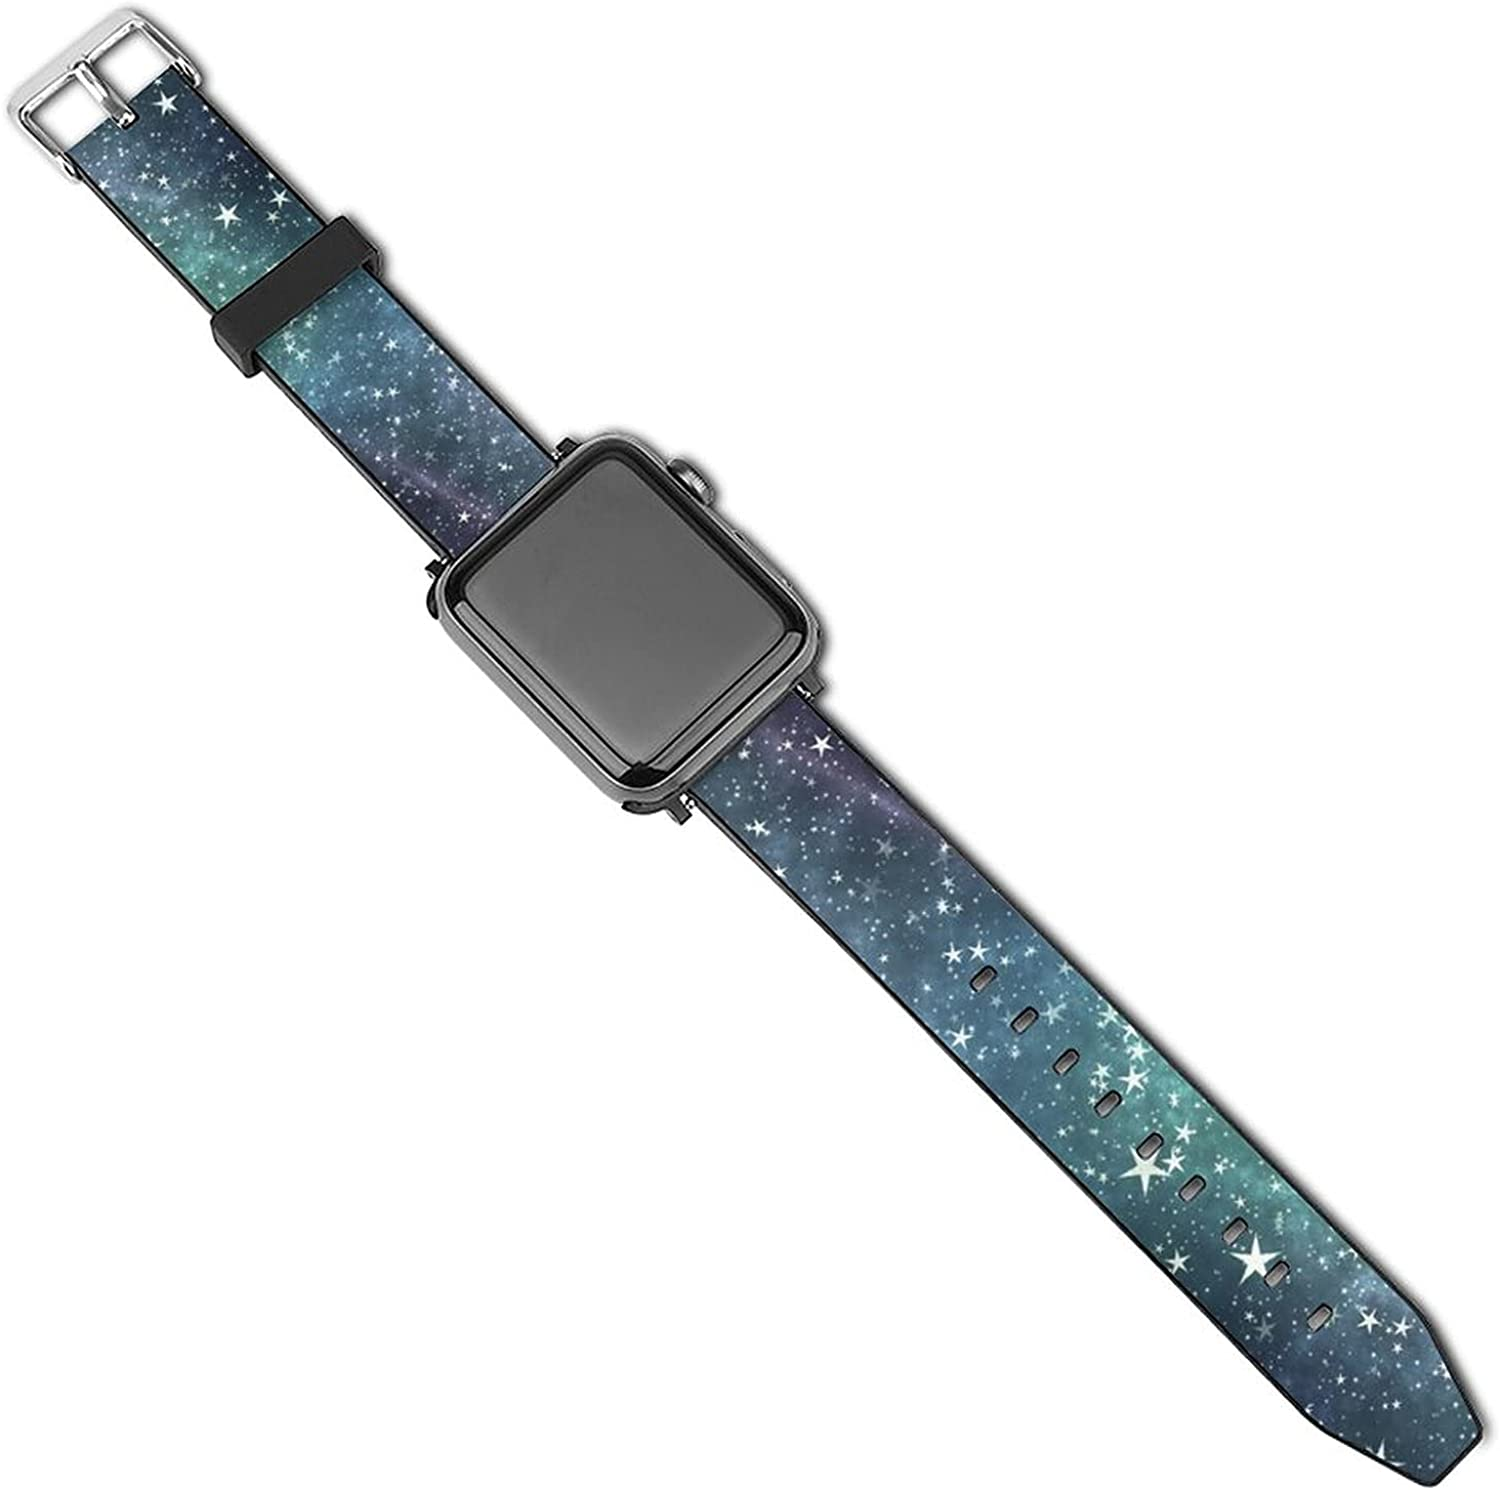 Galaxy Stars Pattern 3D Printed Patterned Leather Wristband Watch Strap For Apple Watch Series